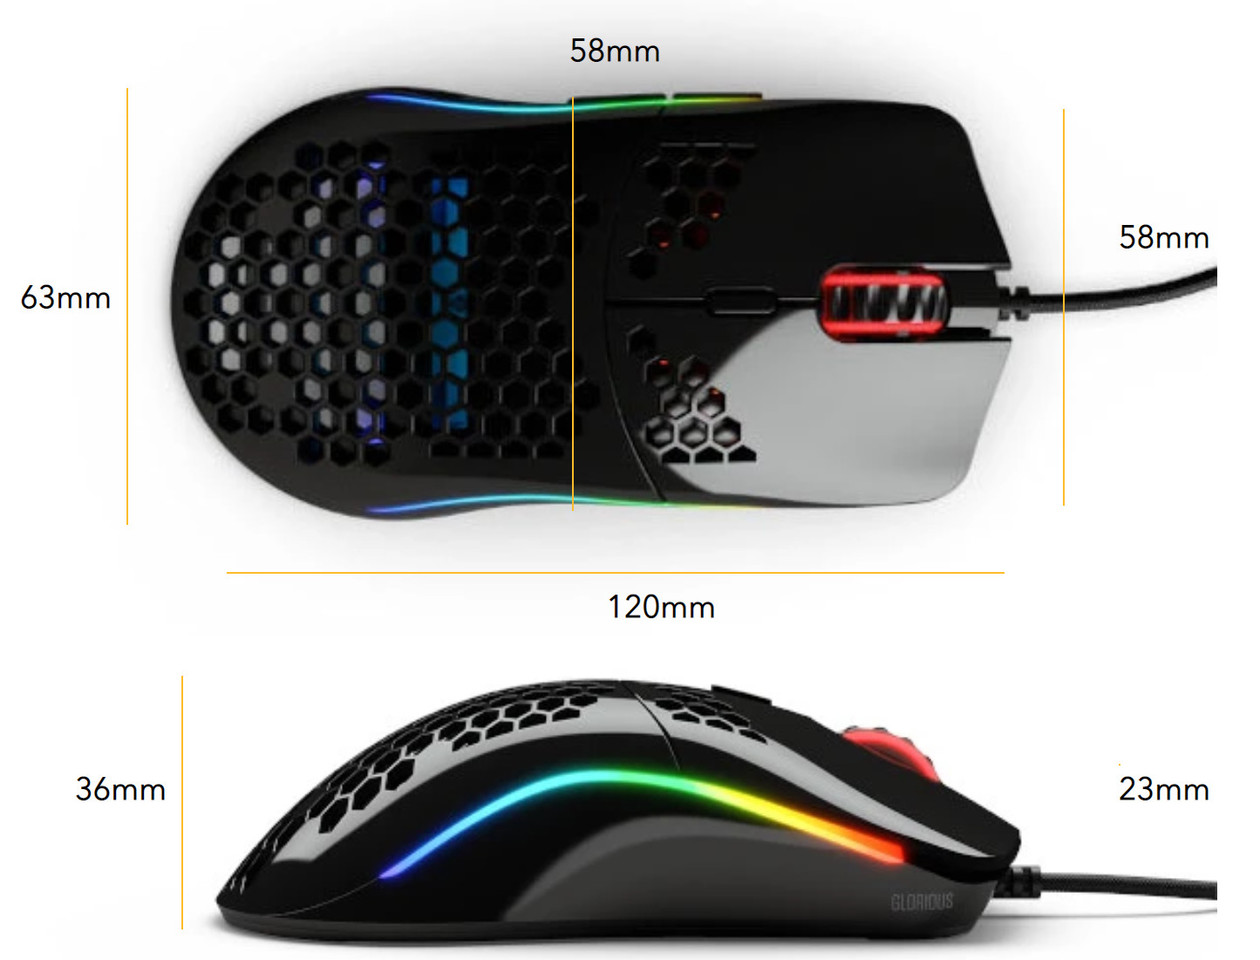 Glorious PC Gaming Race Unveils the Model O- Mouse Weighing